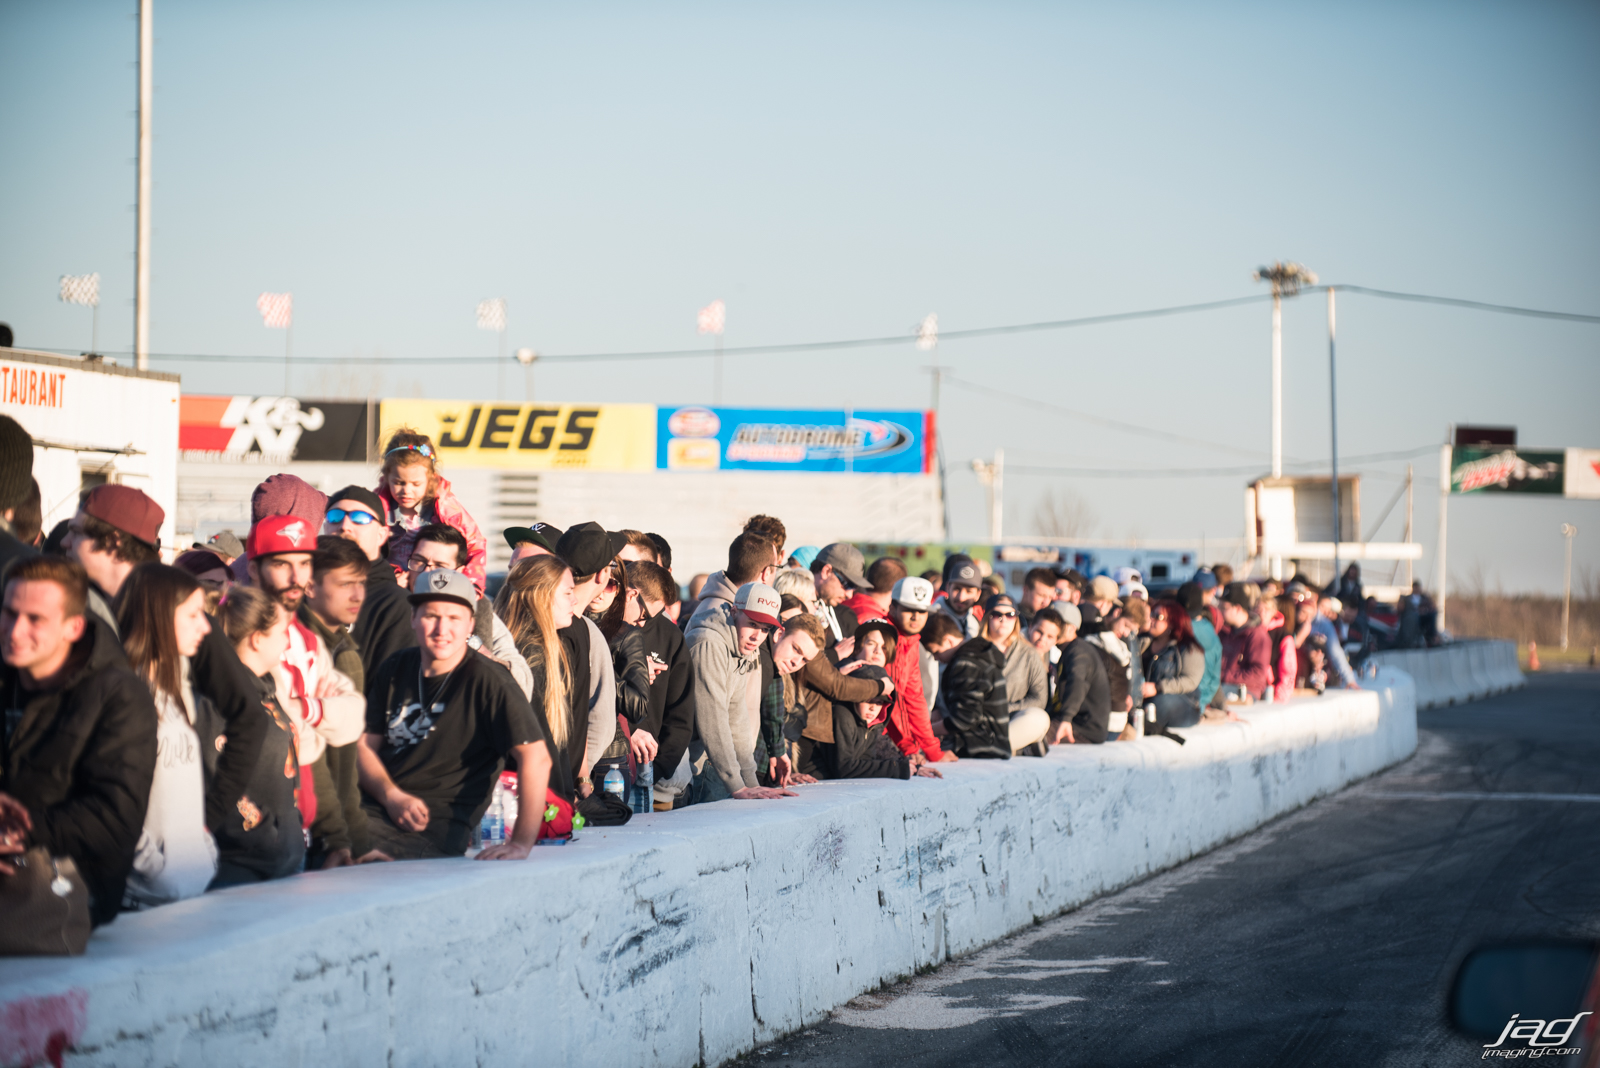 It was crazy the amount of people! Some full on car shows dont get this many people.